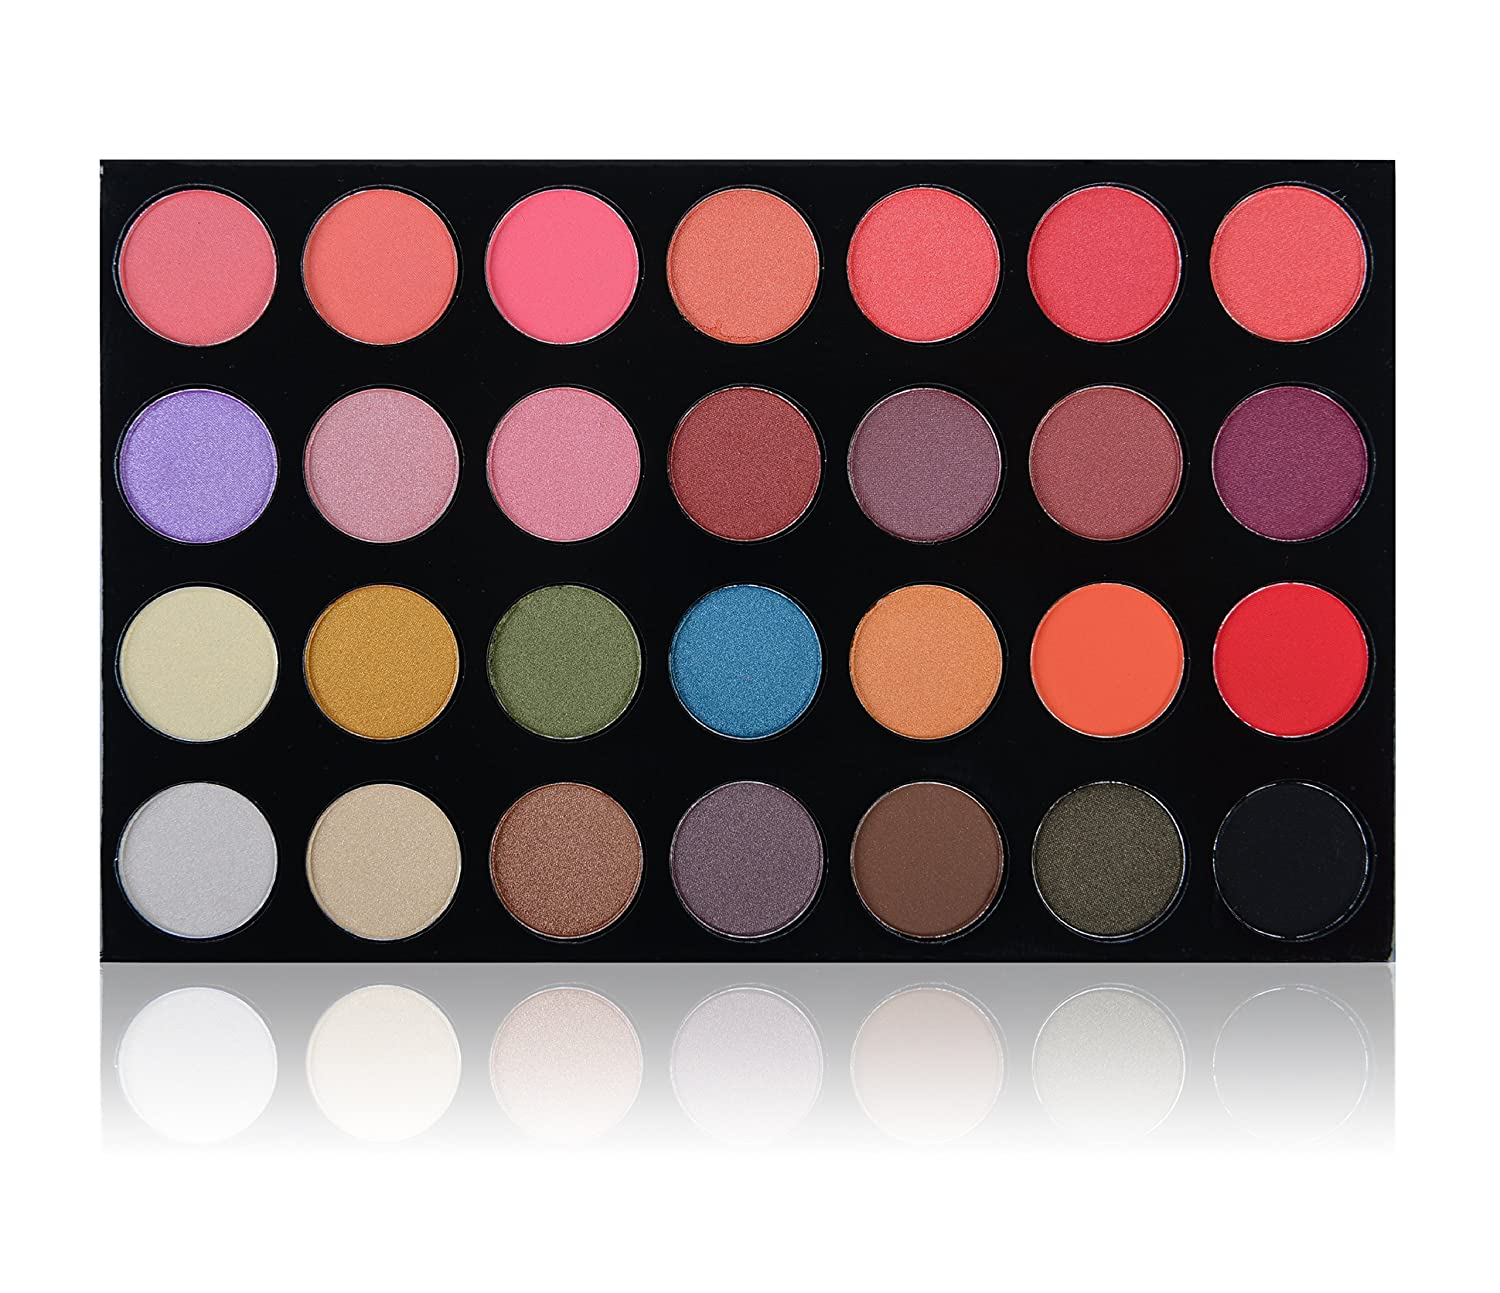 Shany The Masterpiece 28 Colors Ultra Shimmer Eyeshadow Palette /refill-' Party Hopper ' 0.10 Pounds ETRAVIS Inc CA SH-7L-009